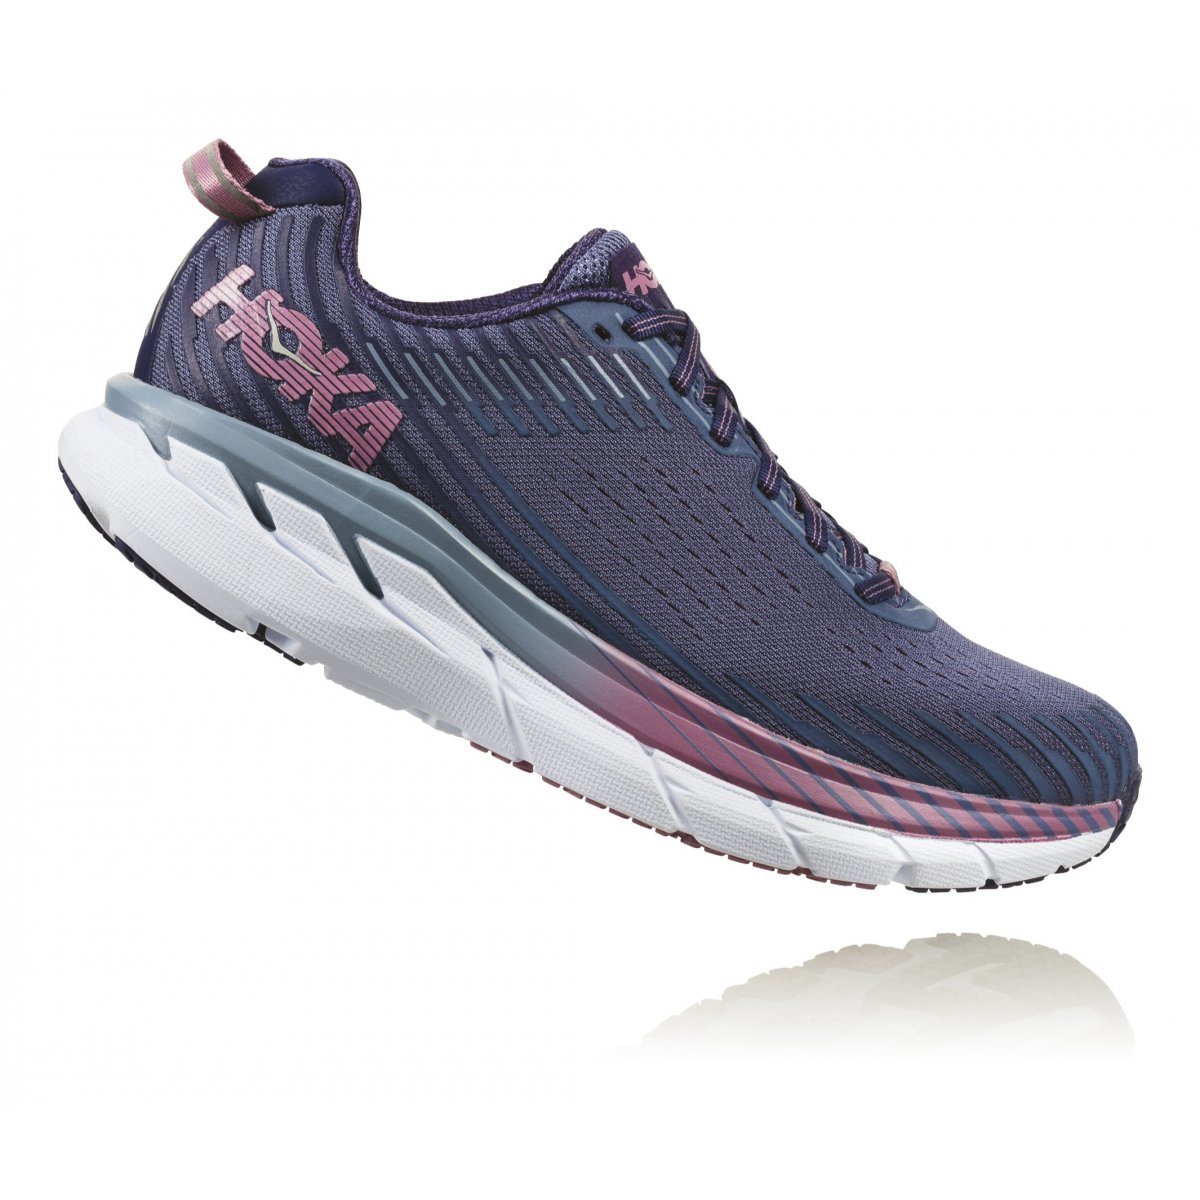 Hoka One One CLIFTON 5 WOMEN S HK.1093756-MBRB - ParagonShop f29a7f64283